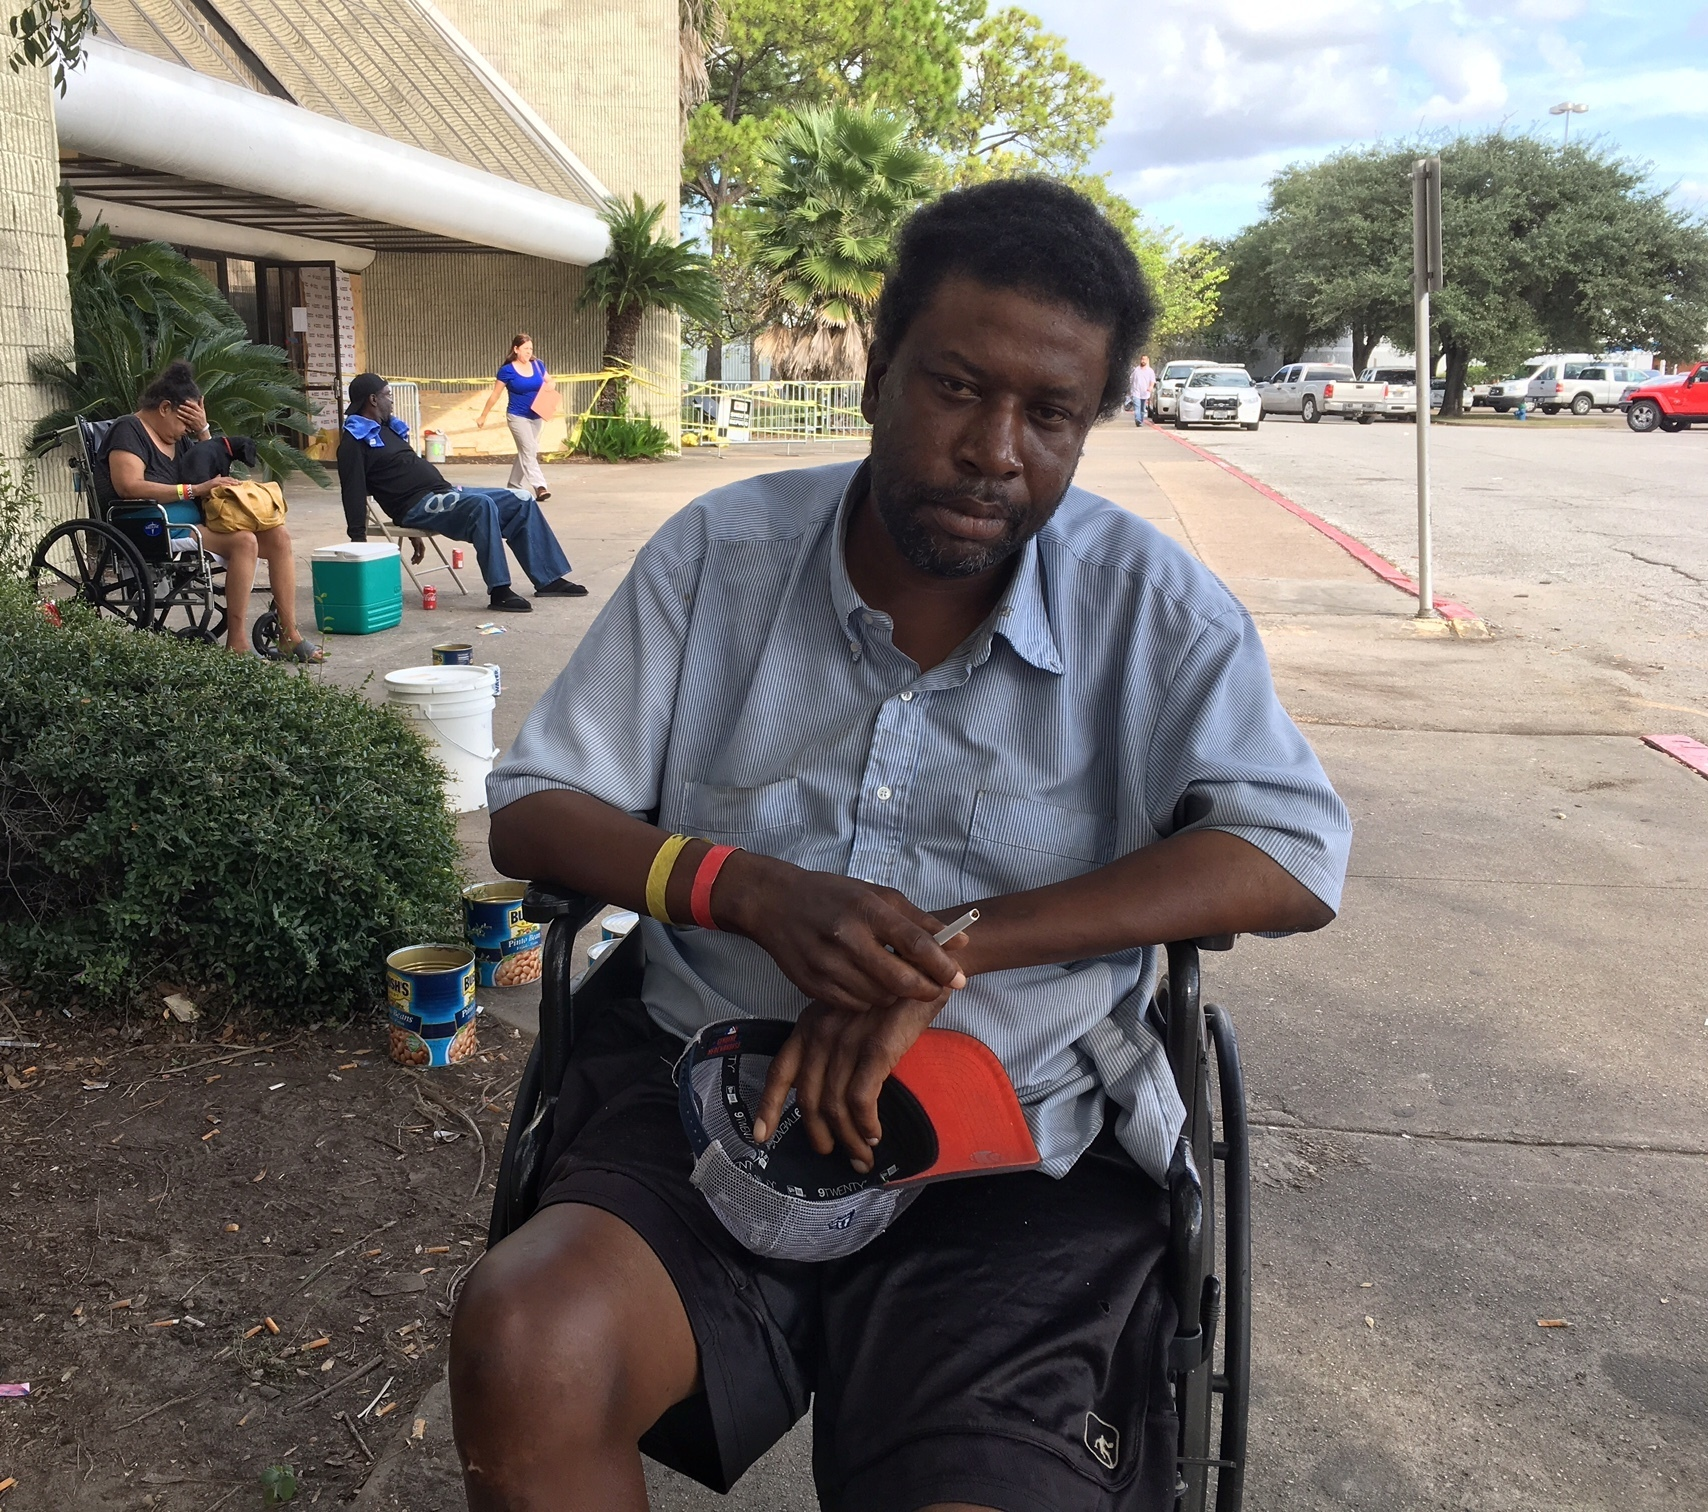 "In this Sept. 26, 2017 photo, one month after Harvey made landfall in Texas and damaged thousands of homes, Houston resident Troy Randle is one of the more than 1,300 individuals in Texas who remain living in shelters. Randle, who is disabled and had been living in a Houston hotel for the last two years until it was flooded, says he feels like he hasn't moved forward since Harvey inundated Houston and is unsure what the future holds for him. When asked what his number one need is, Randle said, ""I need housing."" Houston Mayor Sylvester Turner says one of his main priorities post-Harvey is meeting the housing needs of people who lost their homes and places to live, especially senior citizens, disabled individuals and residents from low income communities. (AP Photo/Juan Lozano)"